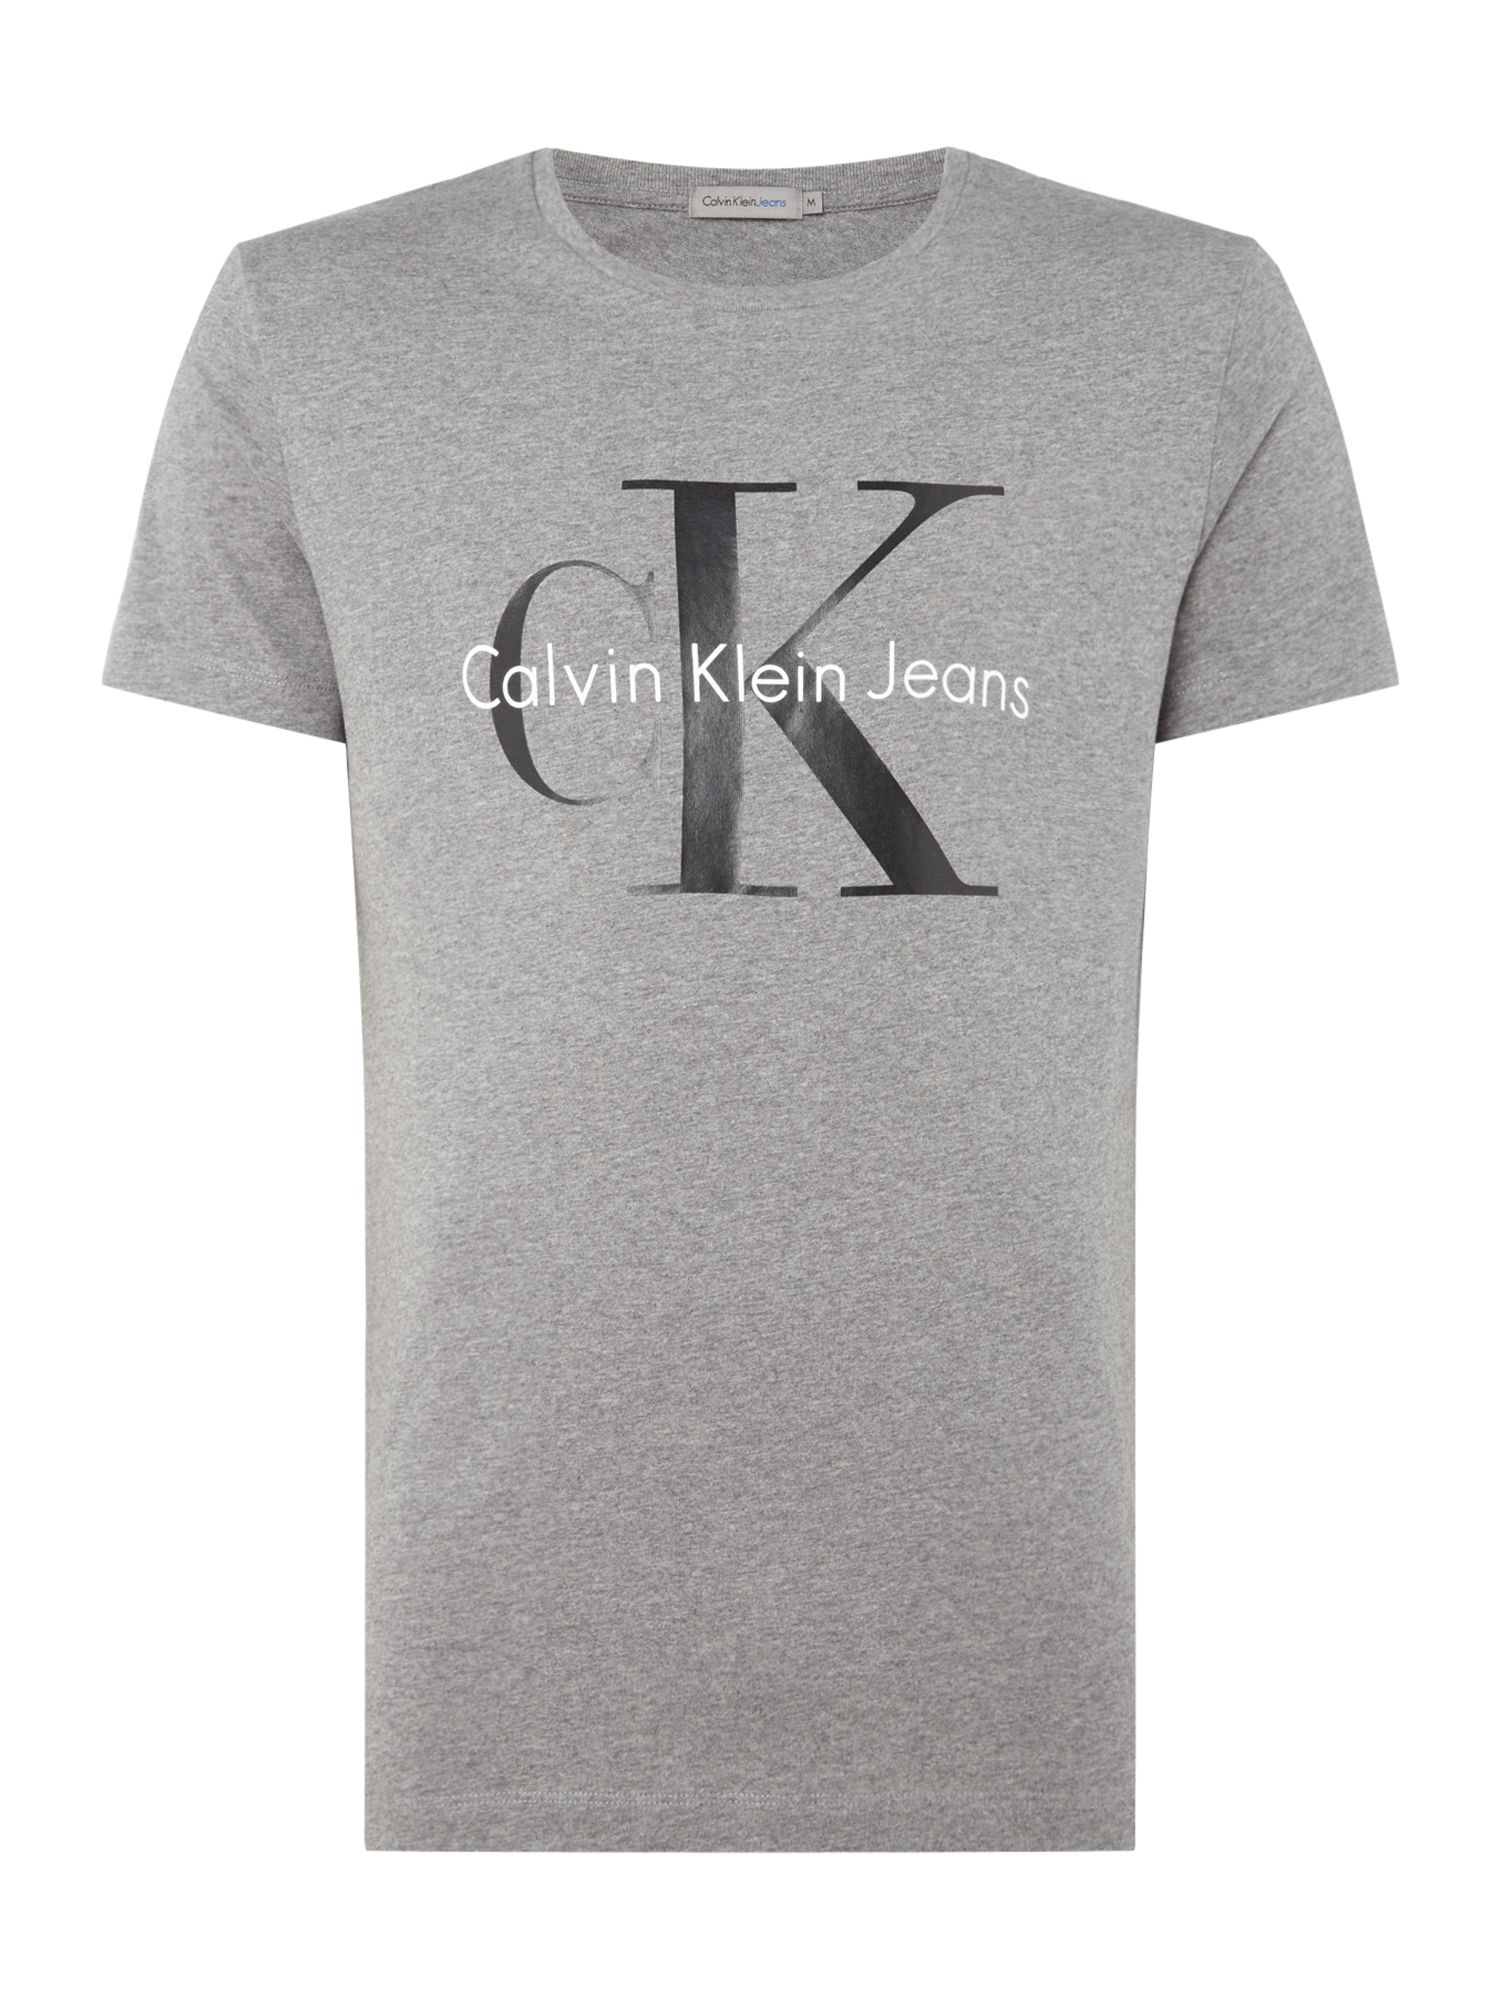 Men's Calvin Klein TEE T-Shirt, Mid Grey